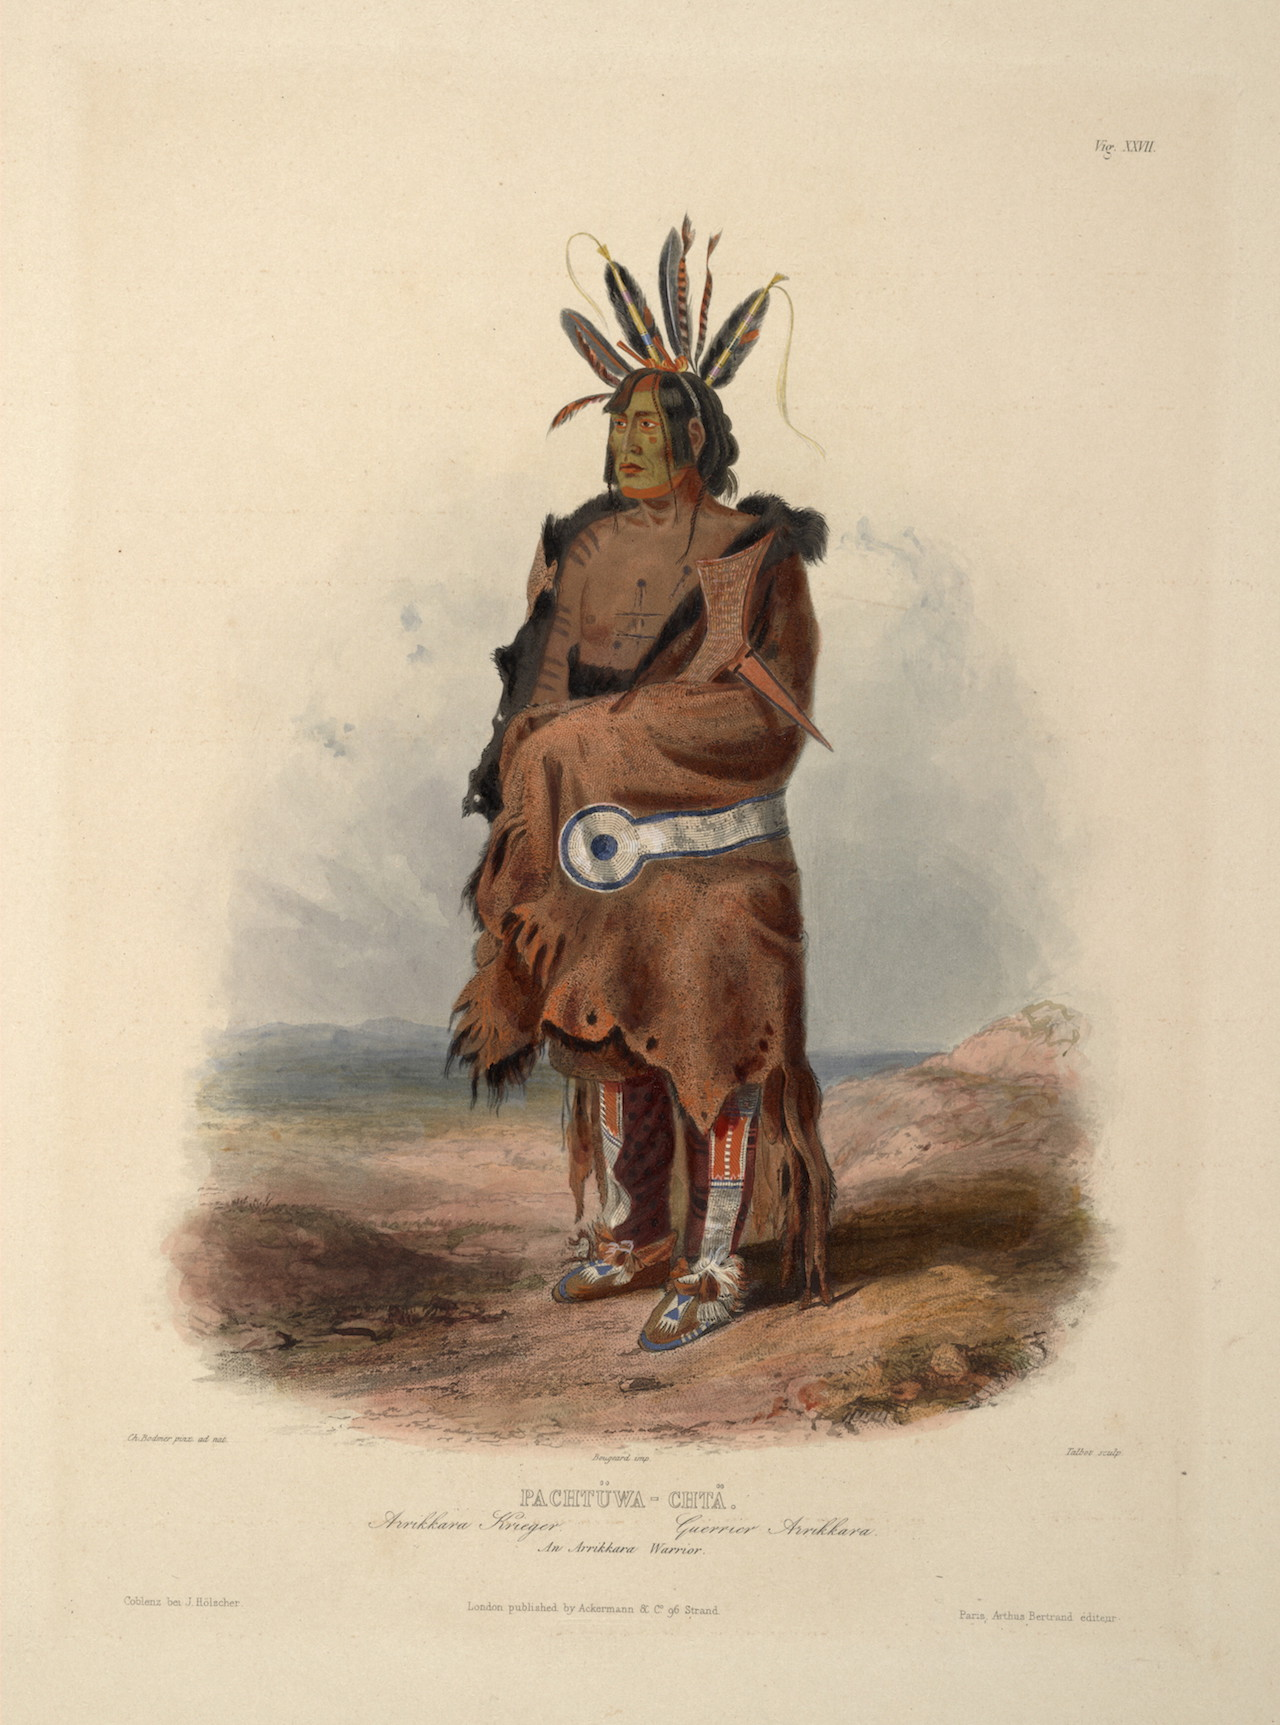 An 1834 depiction of an Arikara warrior by artist Karl Bodmer.